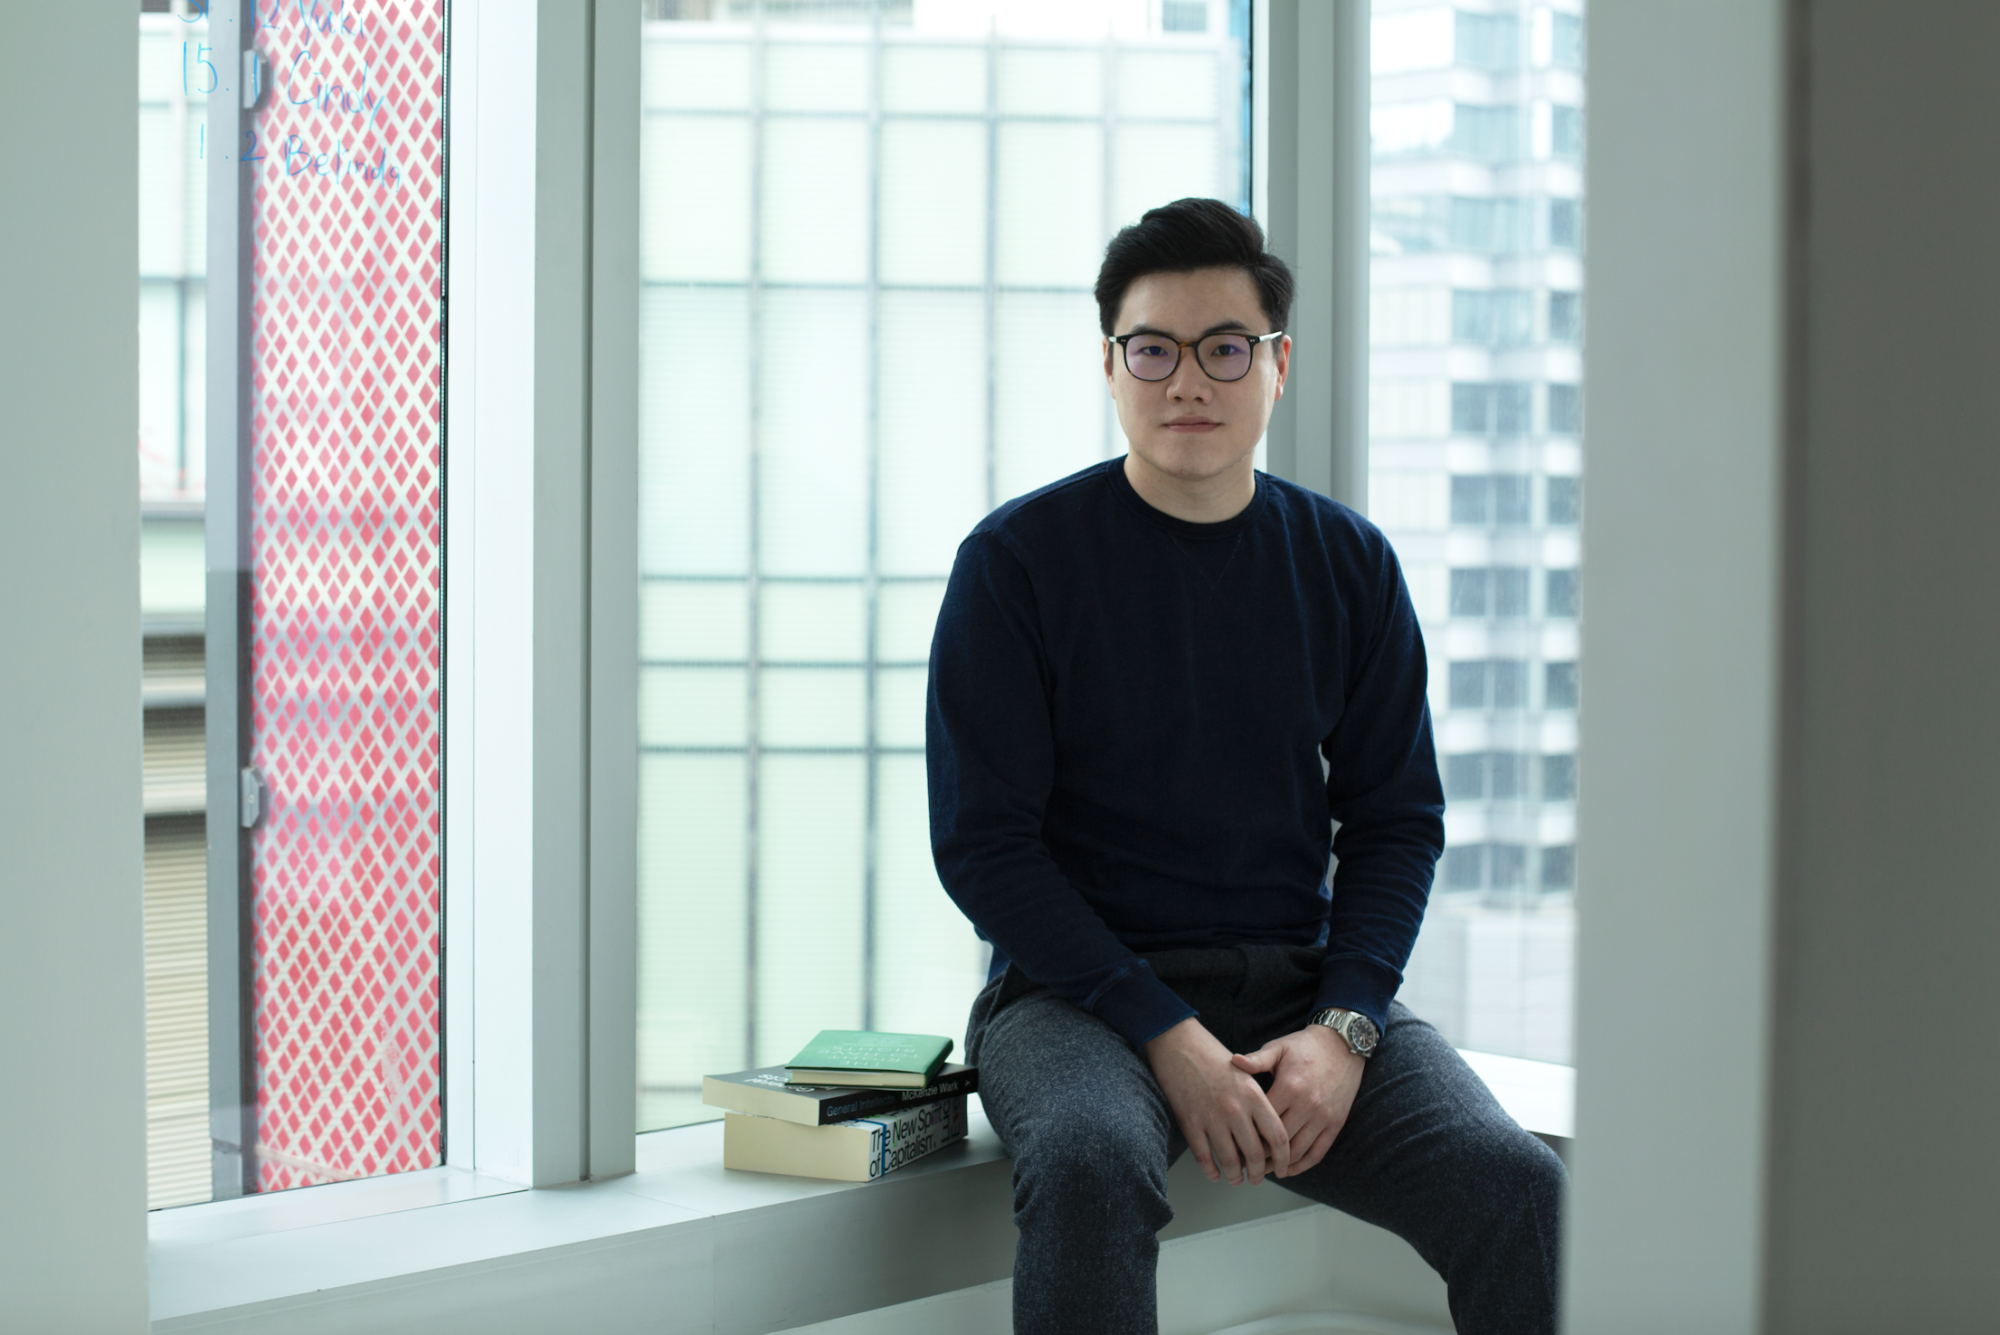 Snapask Founder Timothy Yu Just Closed A US$35 Million Series B. So Why Isn't He Popping Open The Champagne?